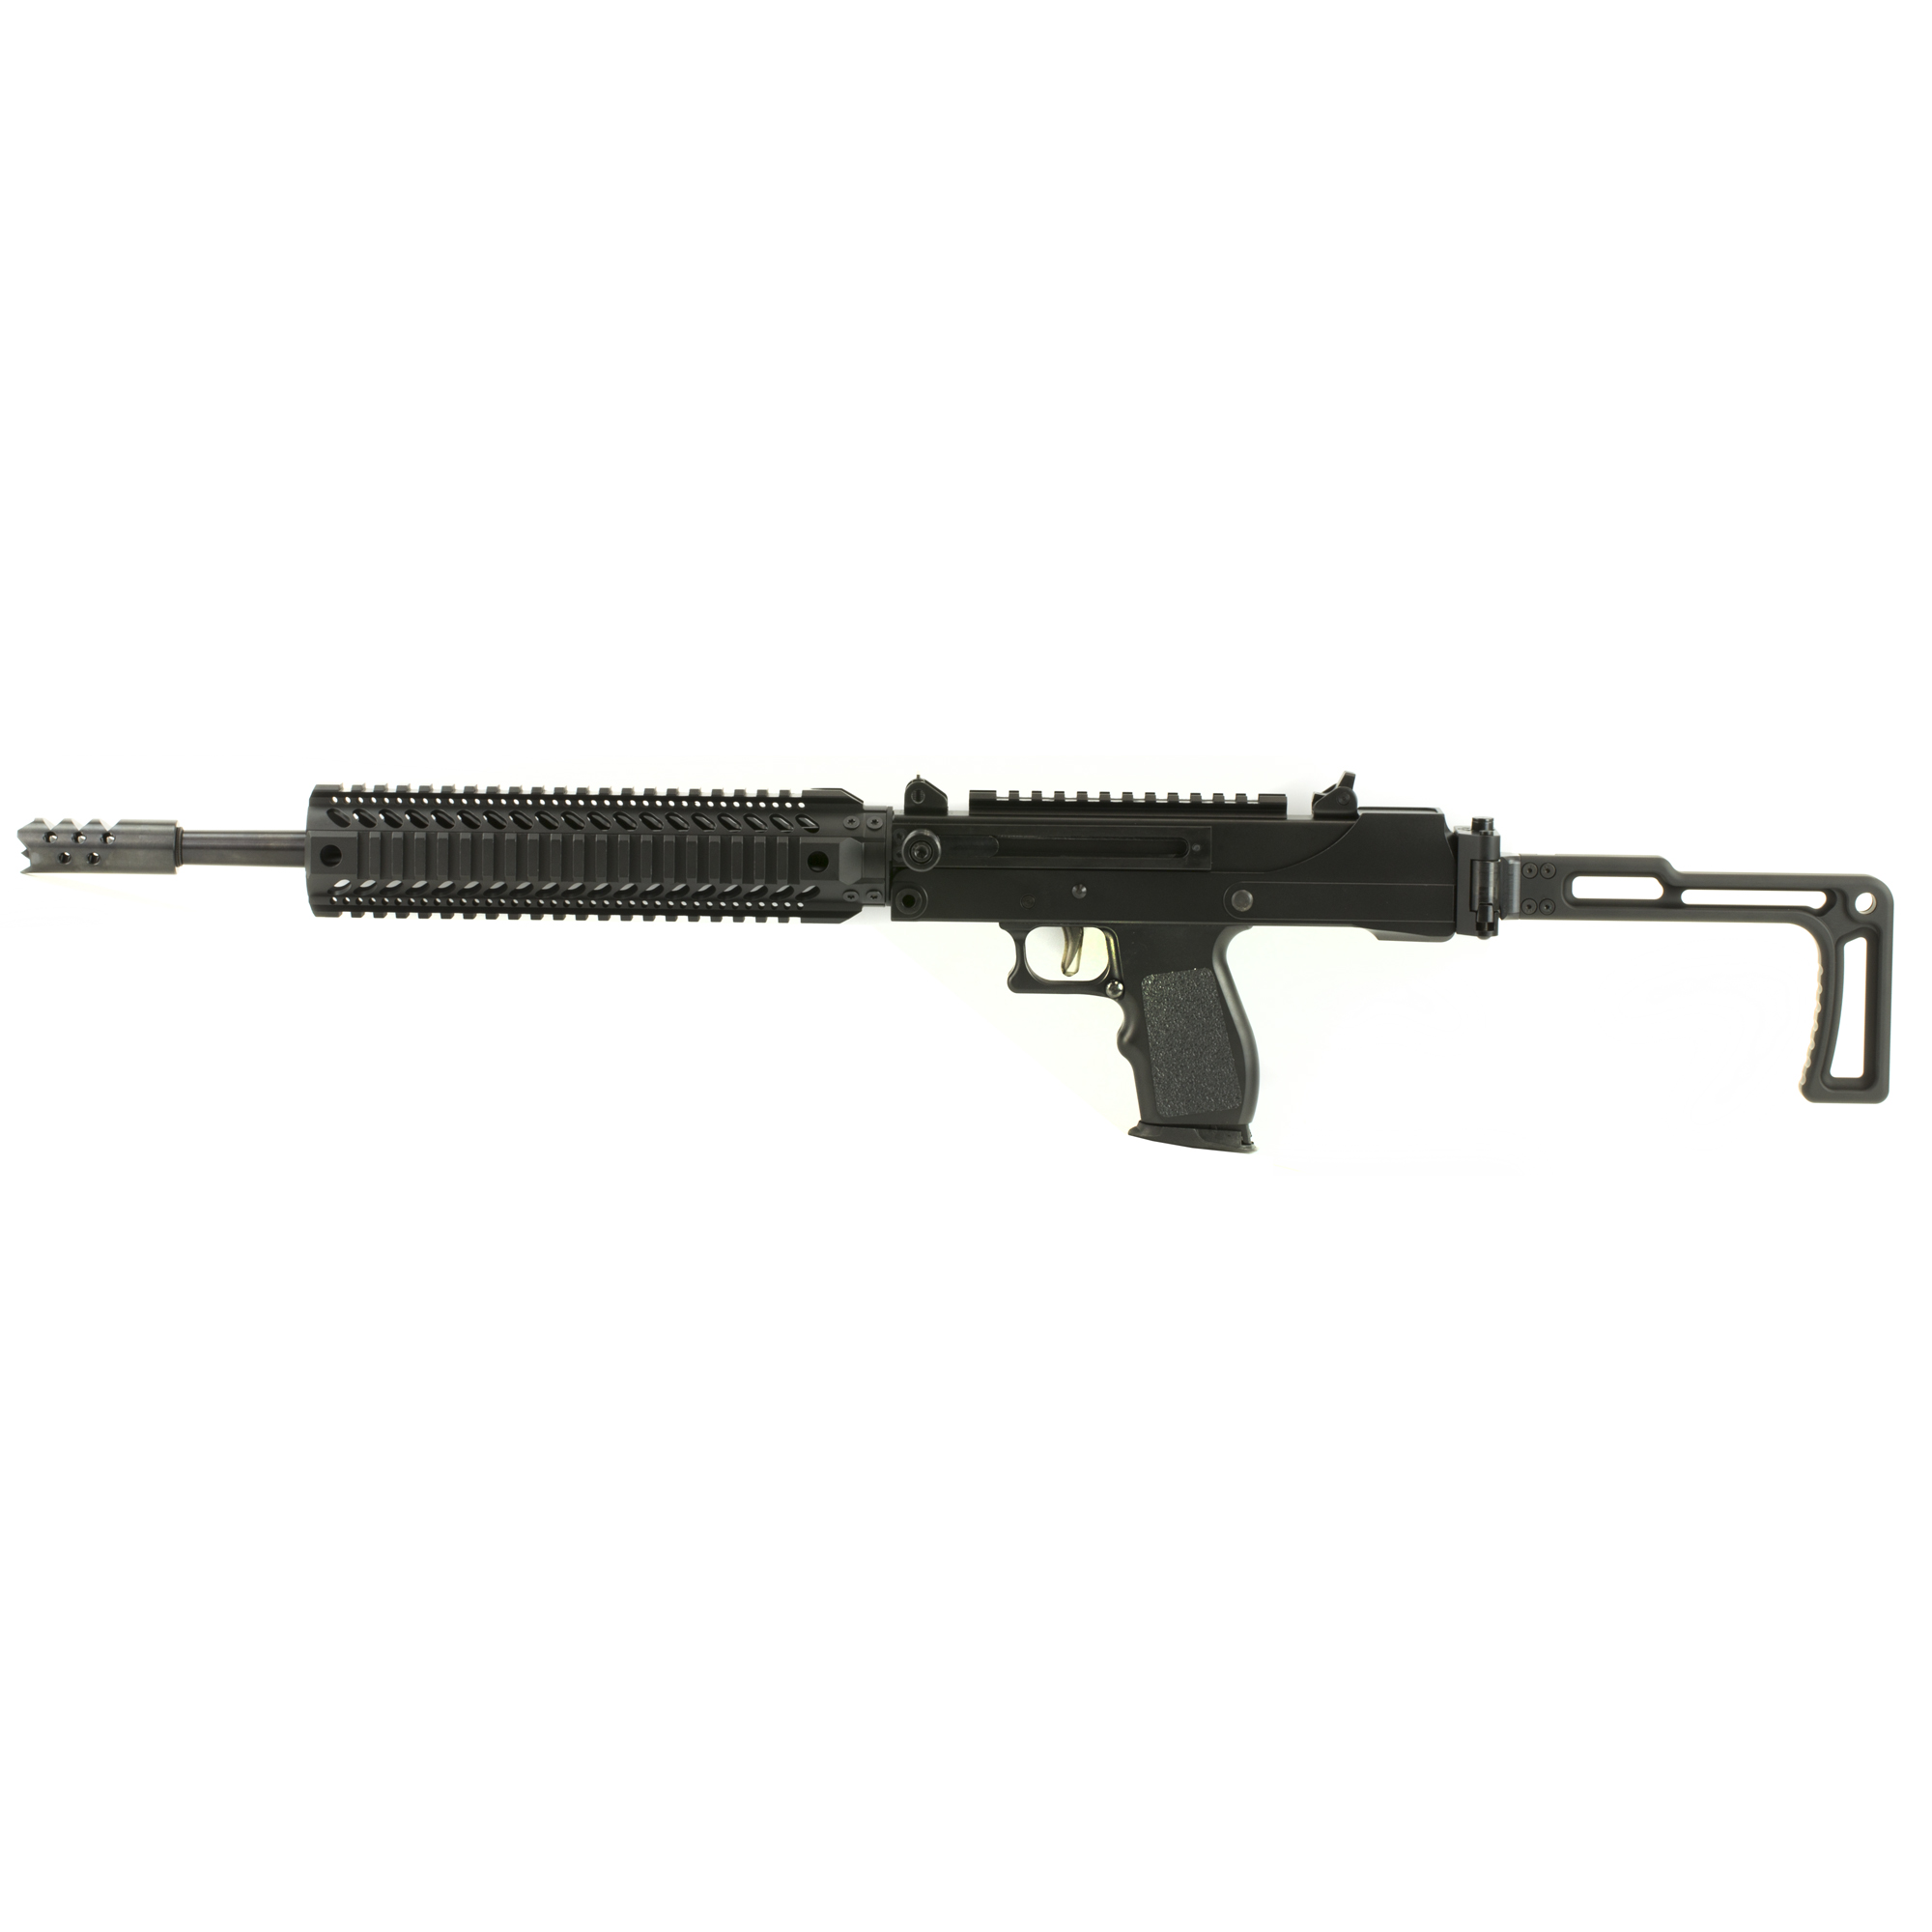 "This 5.7 Carbine features a 16"" threaded barrel"" adjustable sights"" side cocker"" and scope mount."